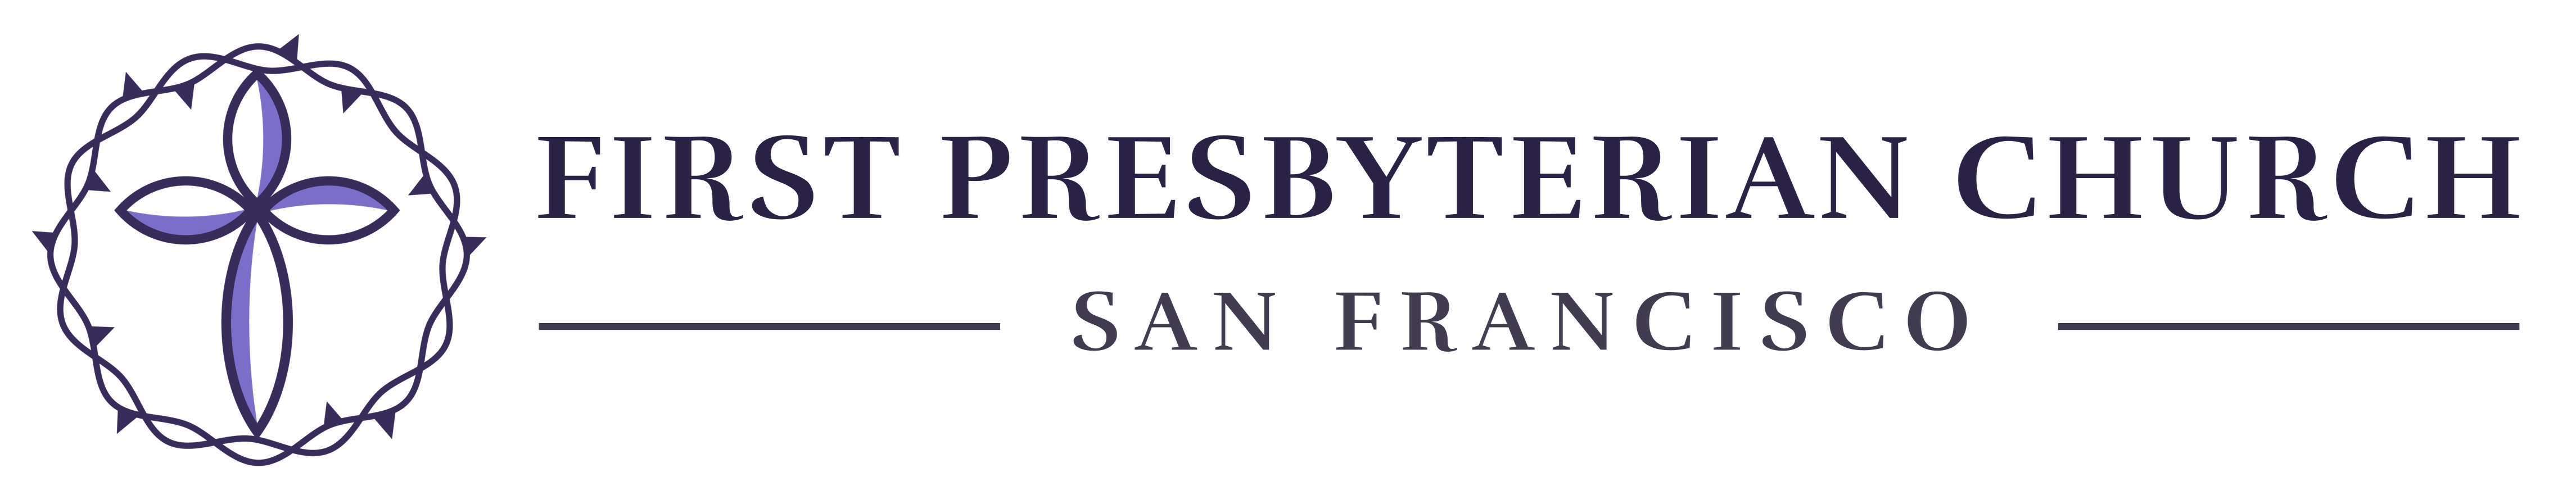 First Presbyterian Church of San Francisco